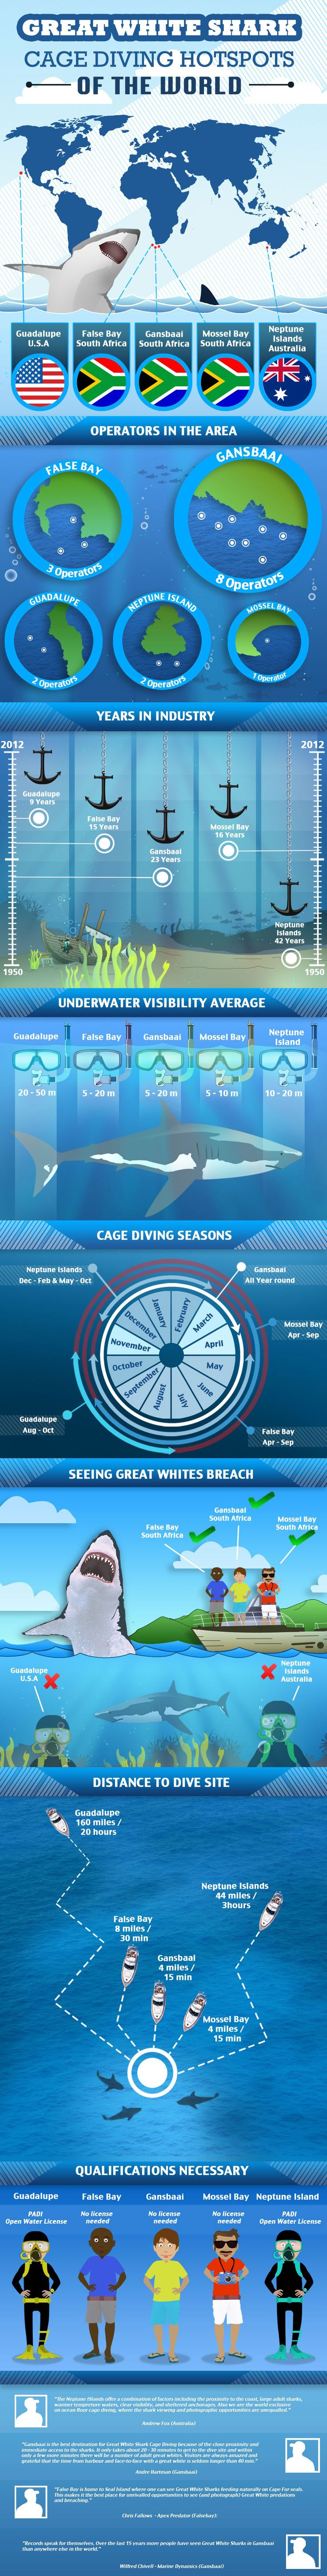 Great White #Shark Cage Diving Hotspots of the World. #scubapro #scubadiverslife…